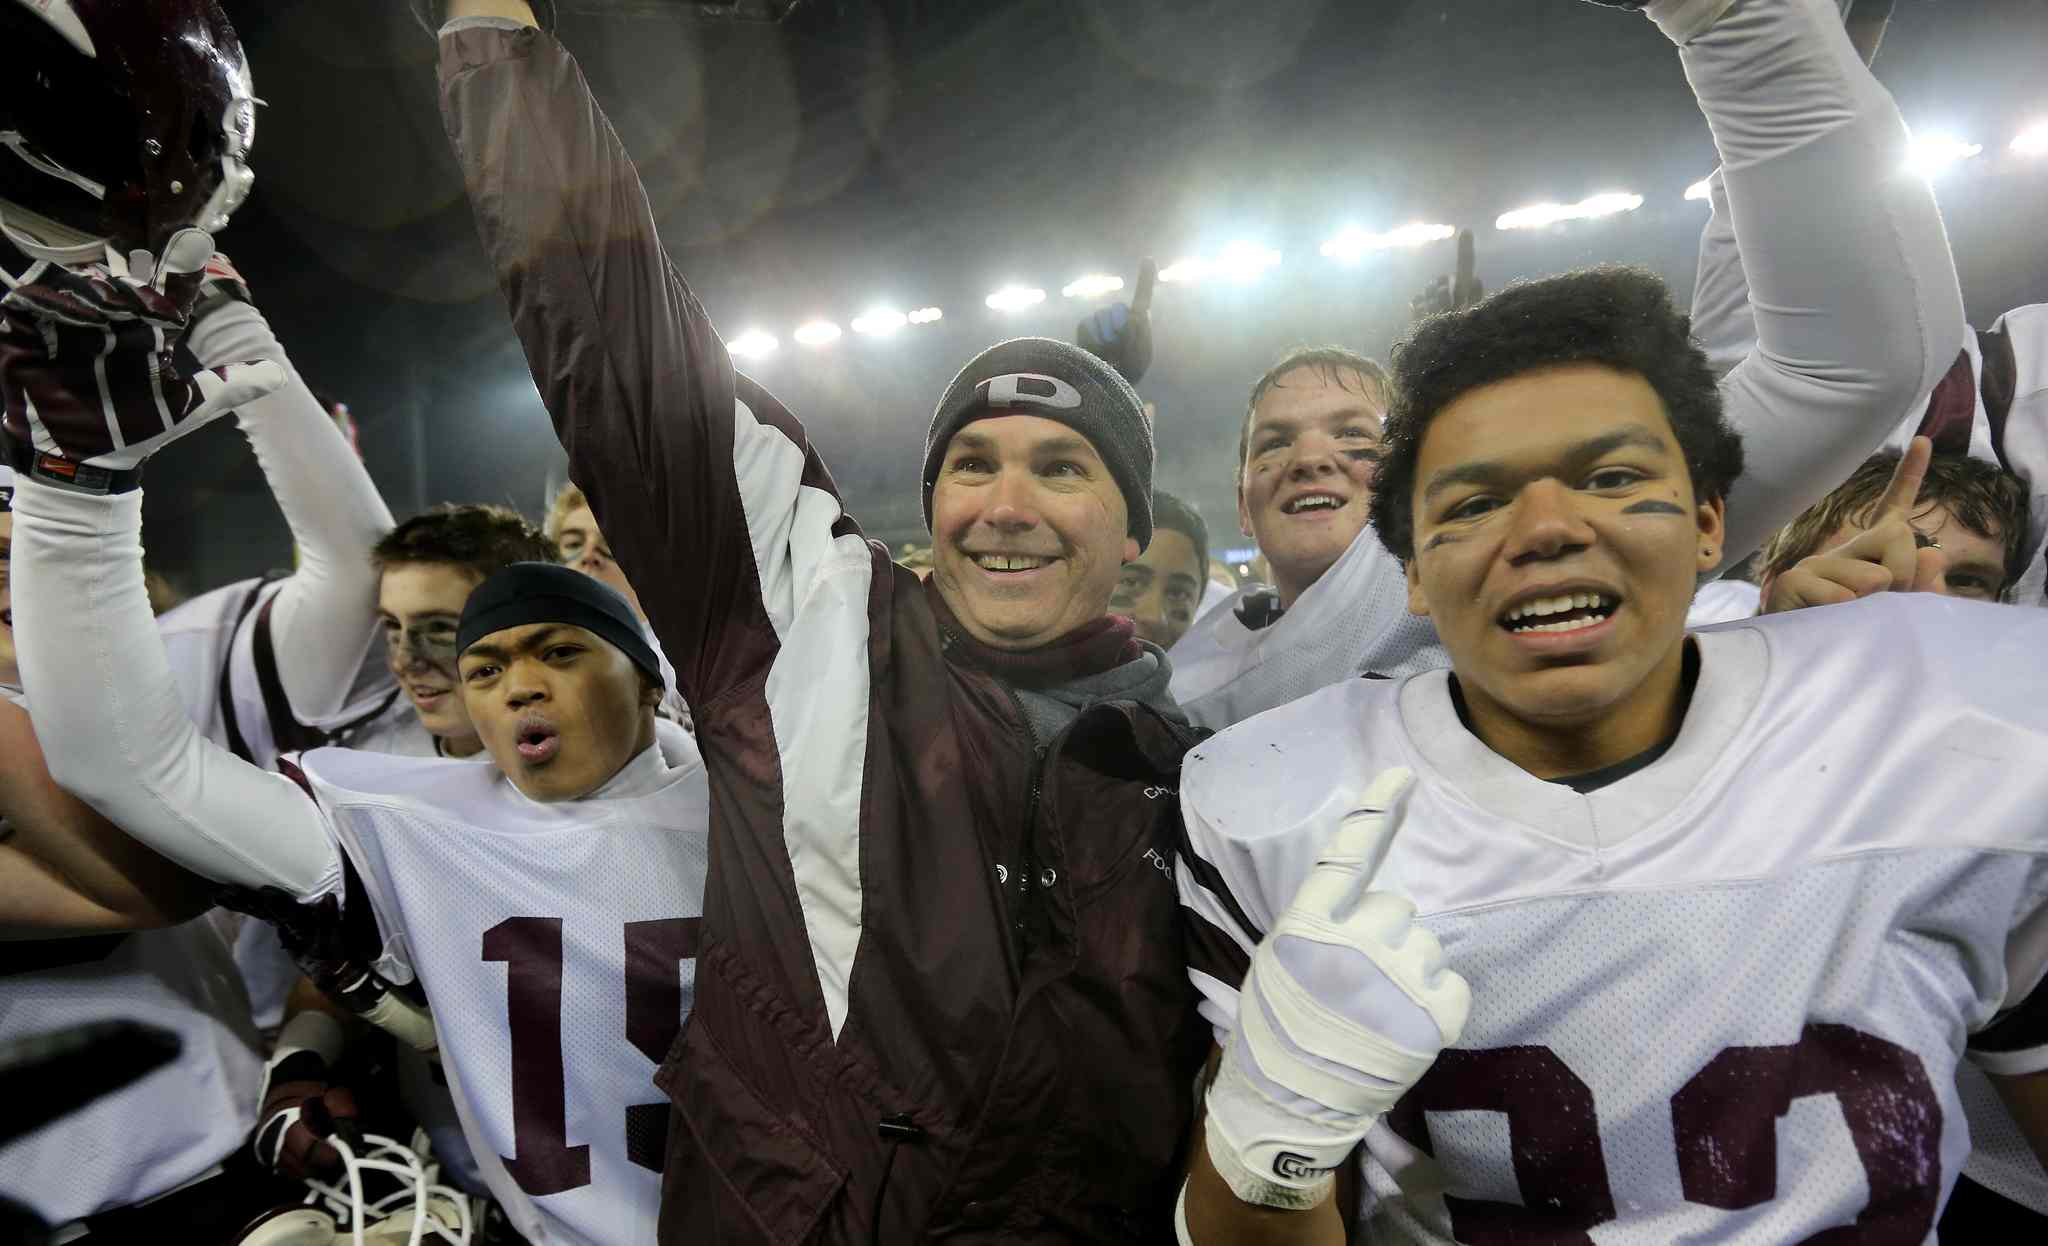 Calvin Diaz (left), head coach Peter Pura (centre) and Trevor Wright of the St.Paul's Crusaders AA football team celebrate their Free Press Bowl Championship victory over the Garden City Fighting Gophers.